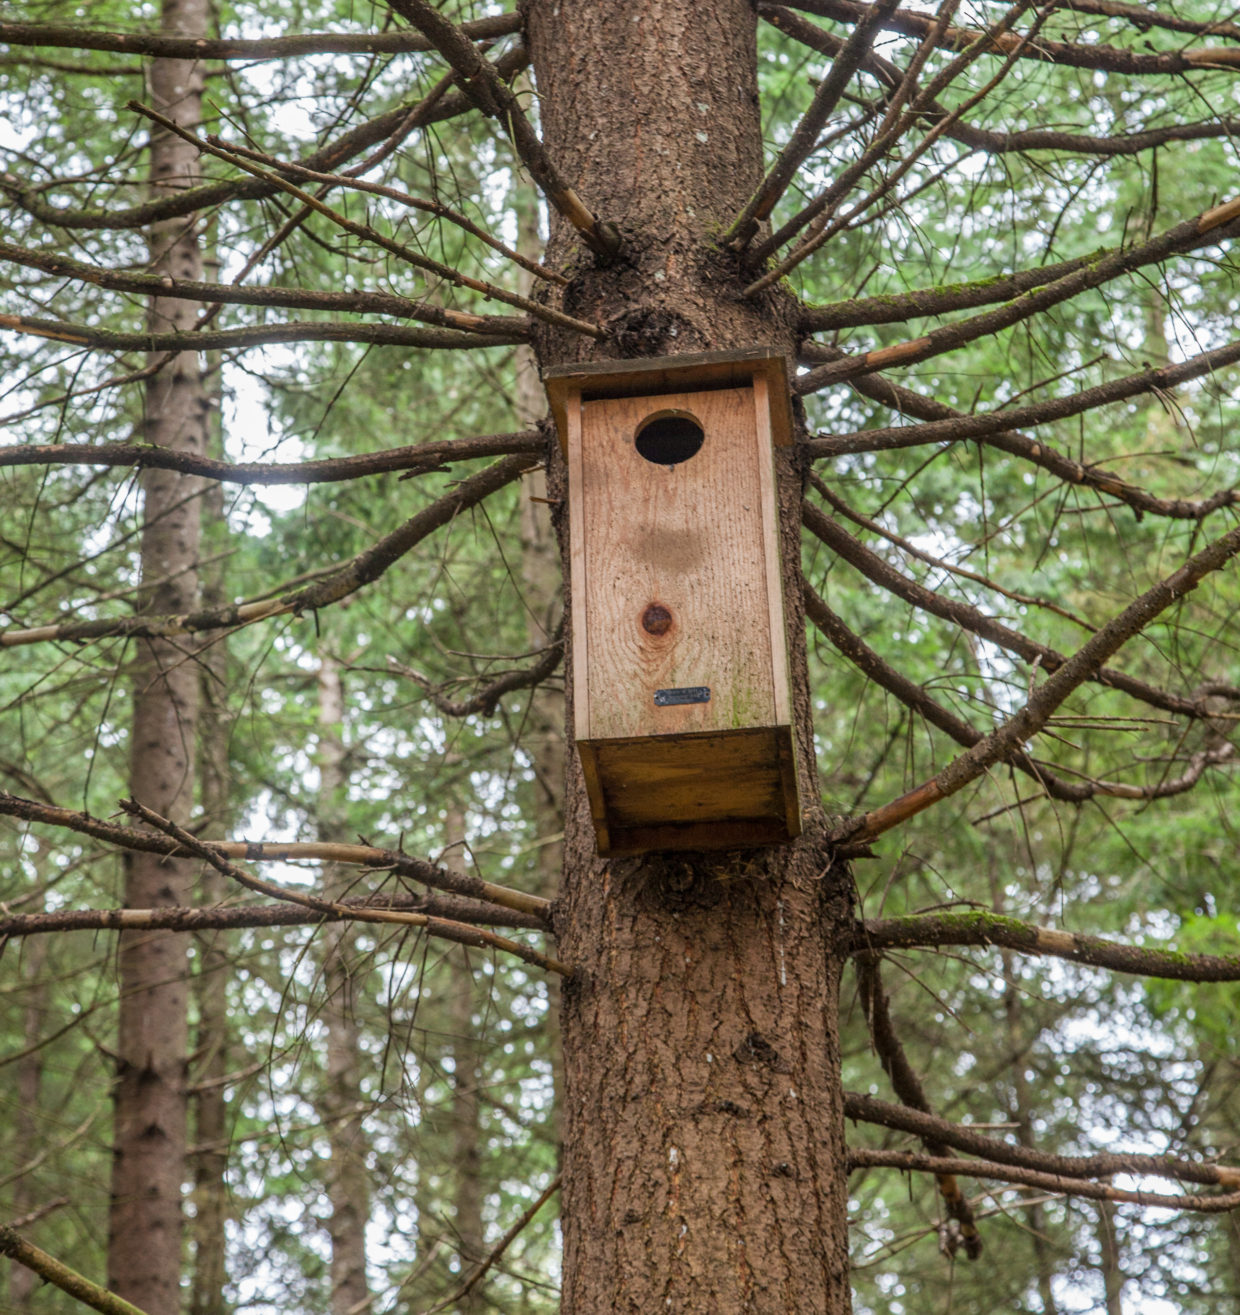 Nesting boxes invite birds to hatch babies in home gardens